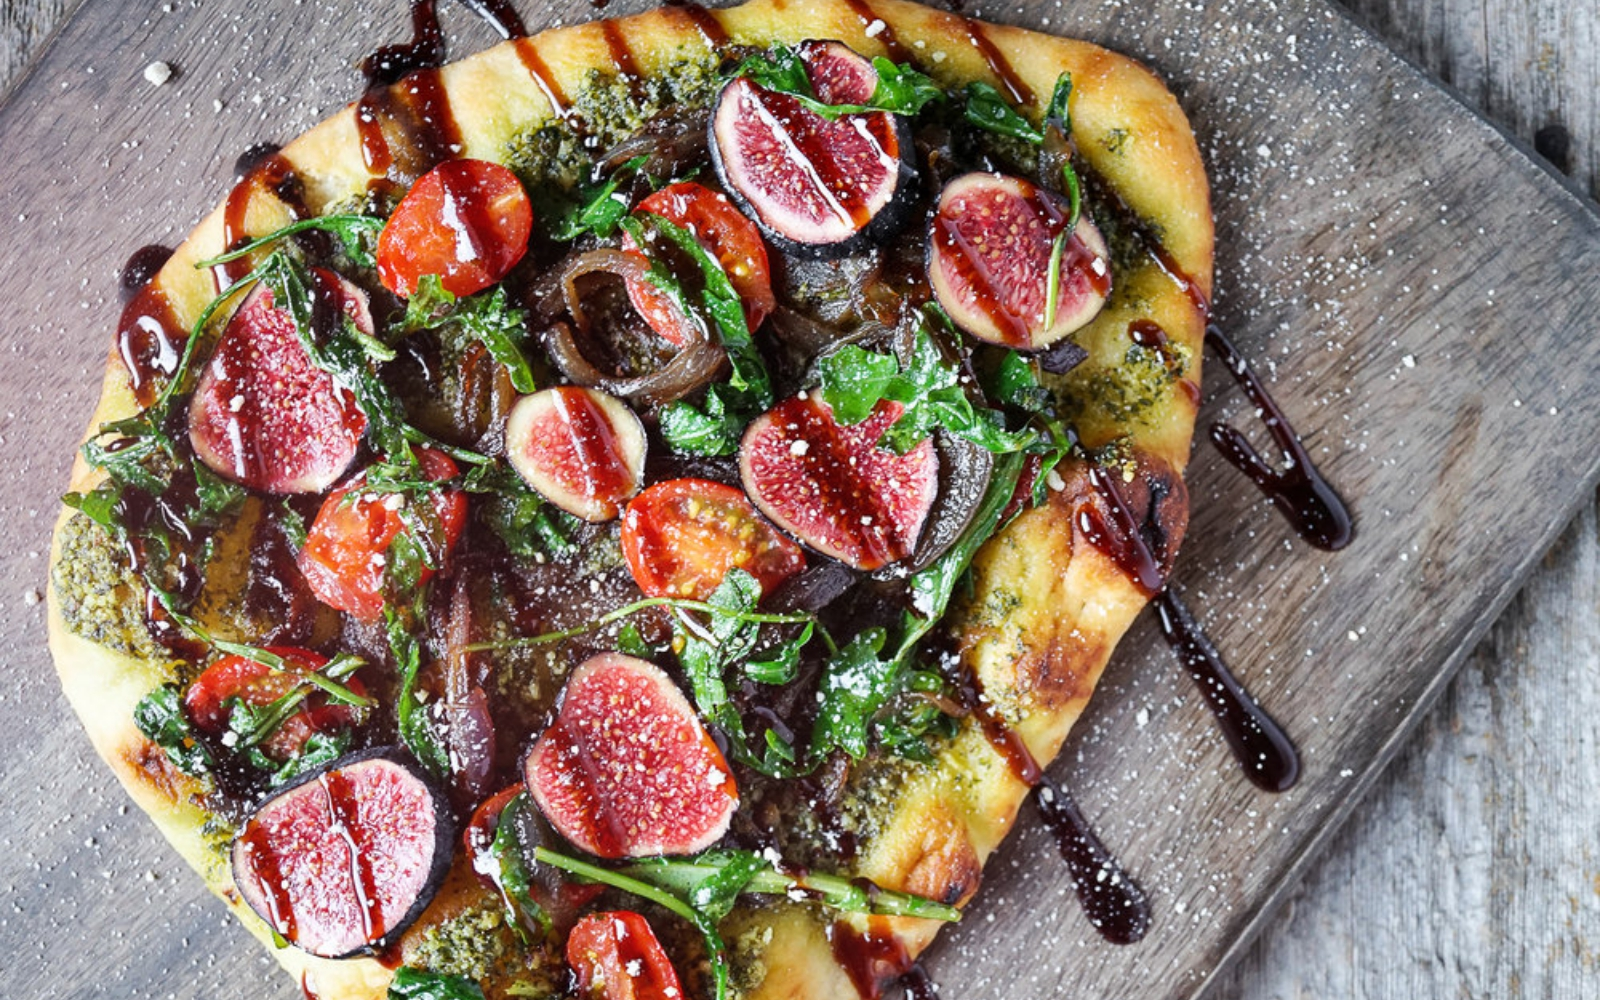 Fig and Caramelized Onion Flatbread [Vegan]